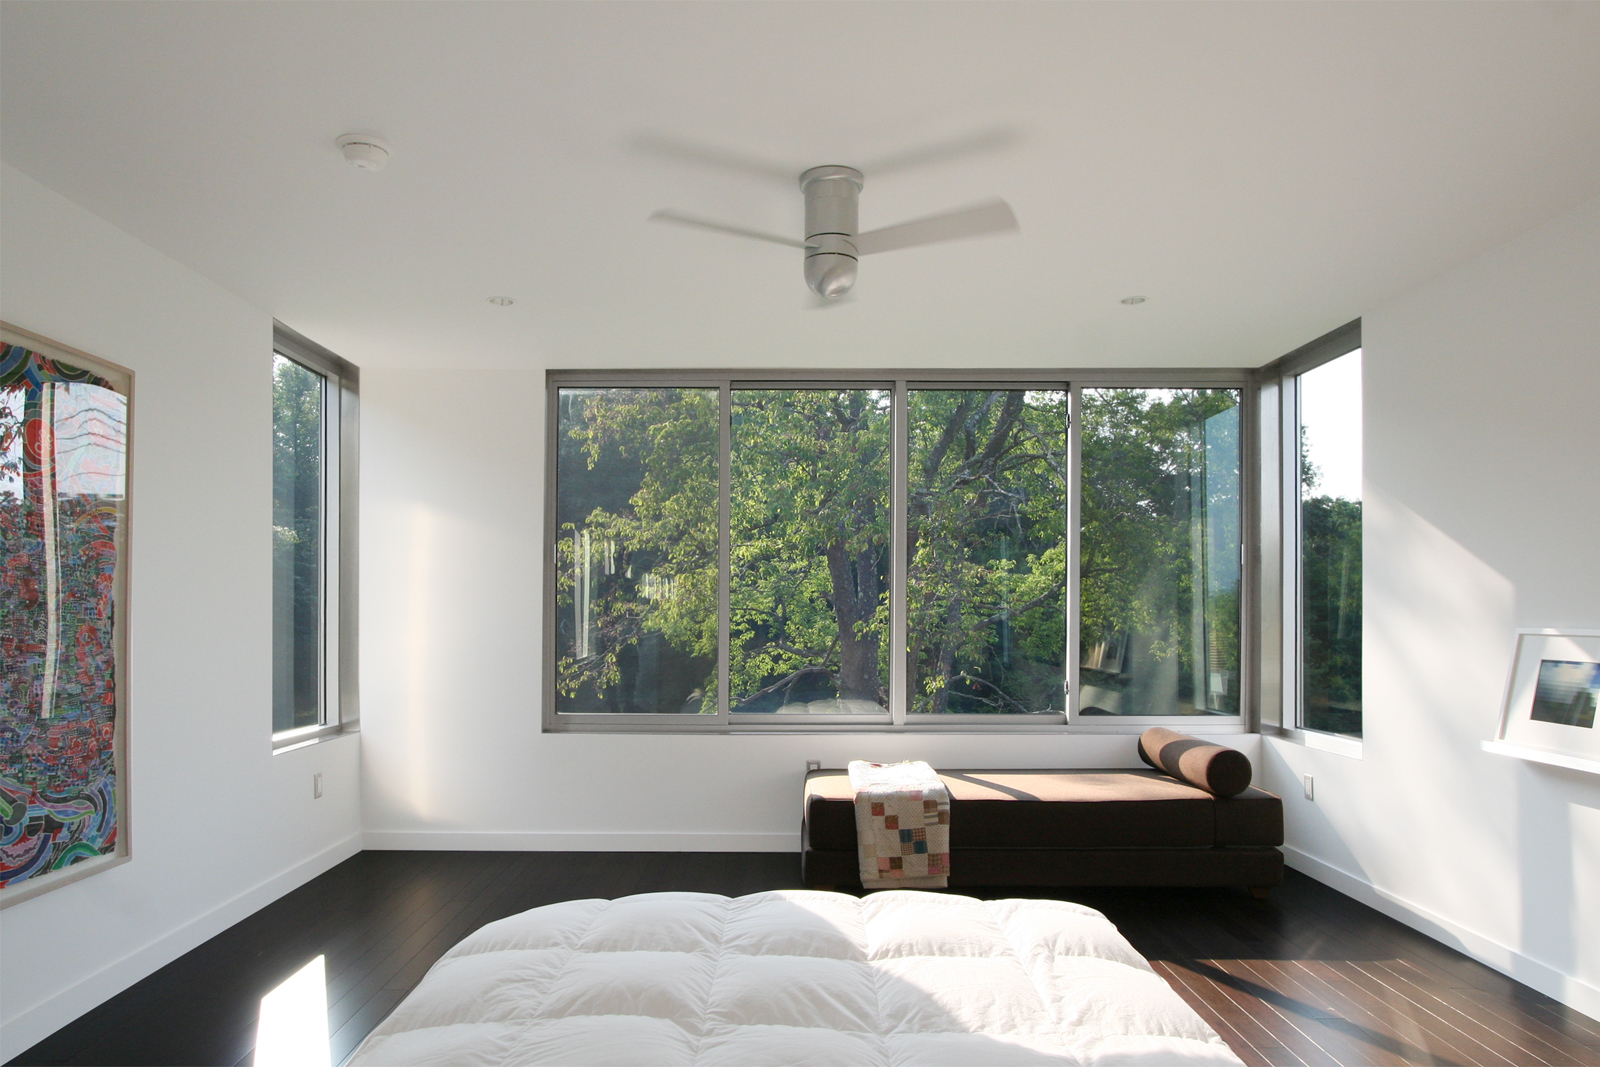 13-res4-resolution-4-architecture-modern-modular-home-prefab-sunset-ridge-house-interior-master-bedroom.jpg